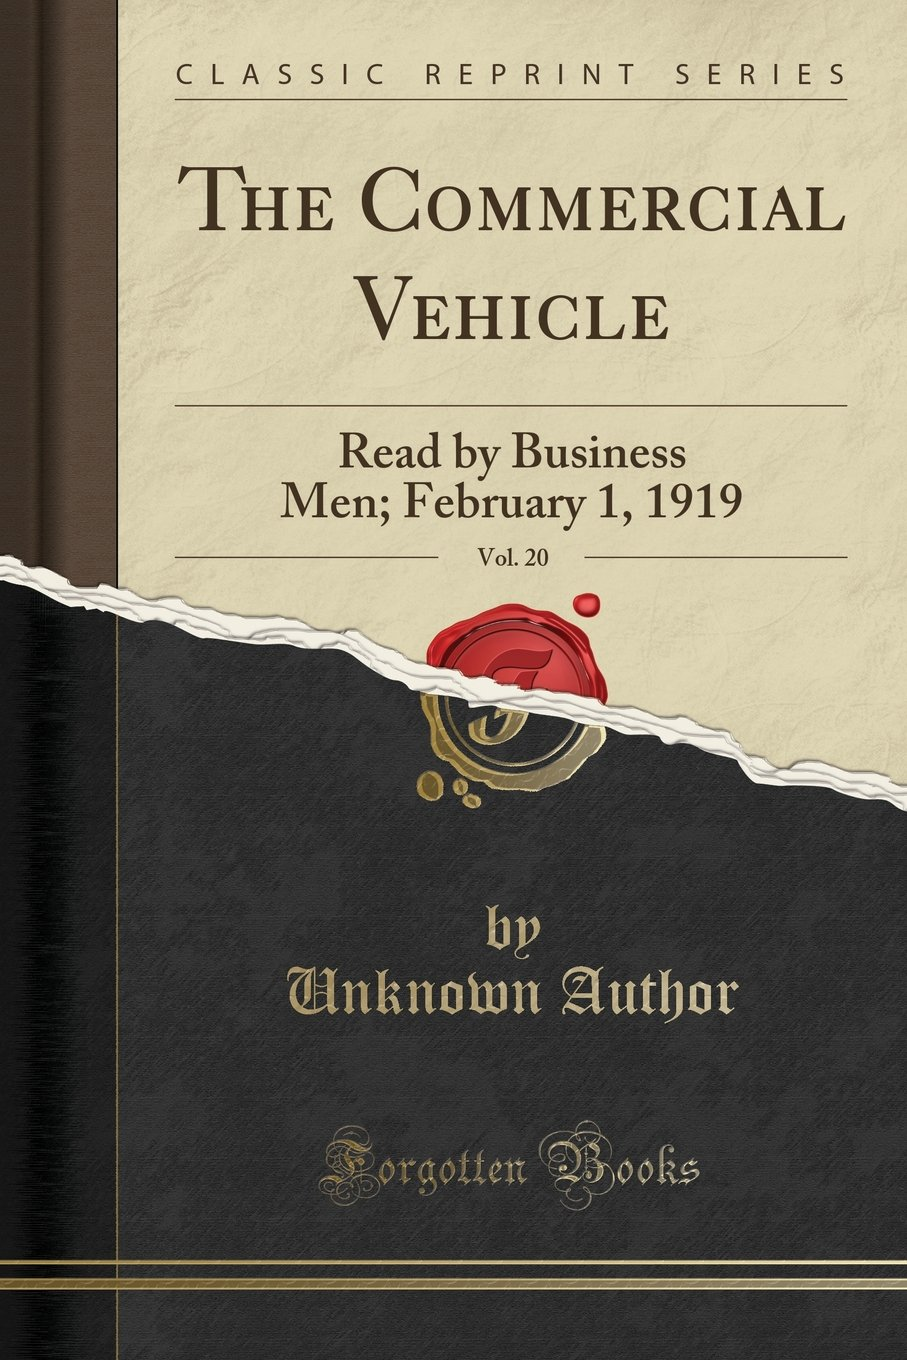 The Commercial Vehicle, Vol. 20: Read by Business Men; February 1, 1919 (Classic Reprint) PDF